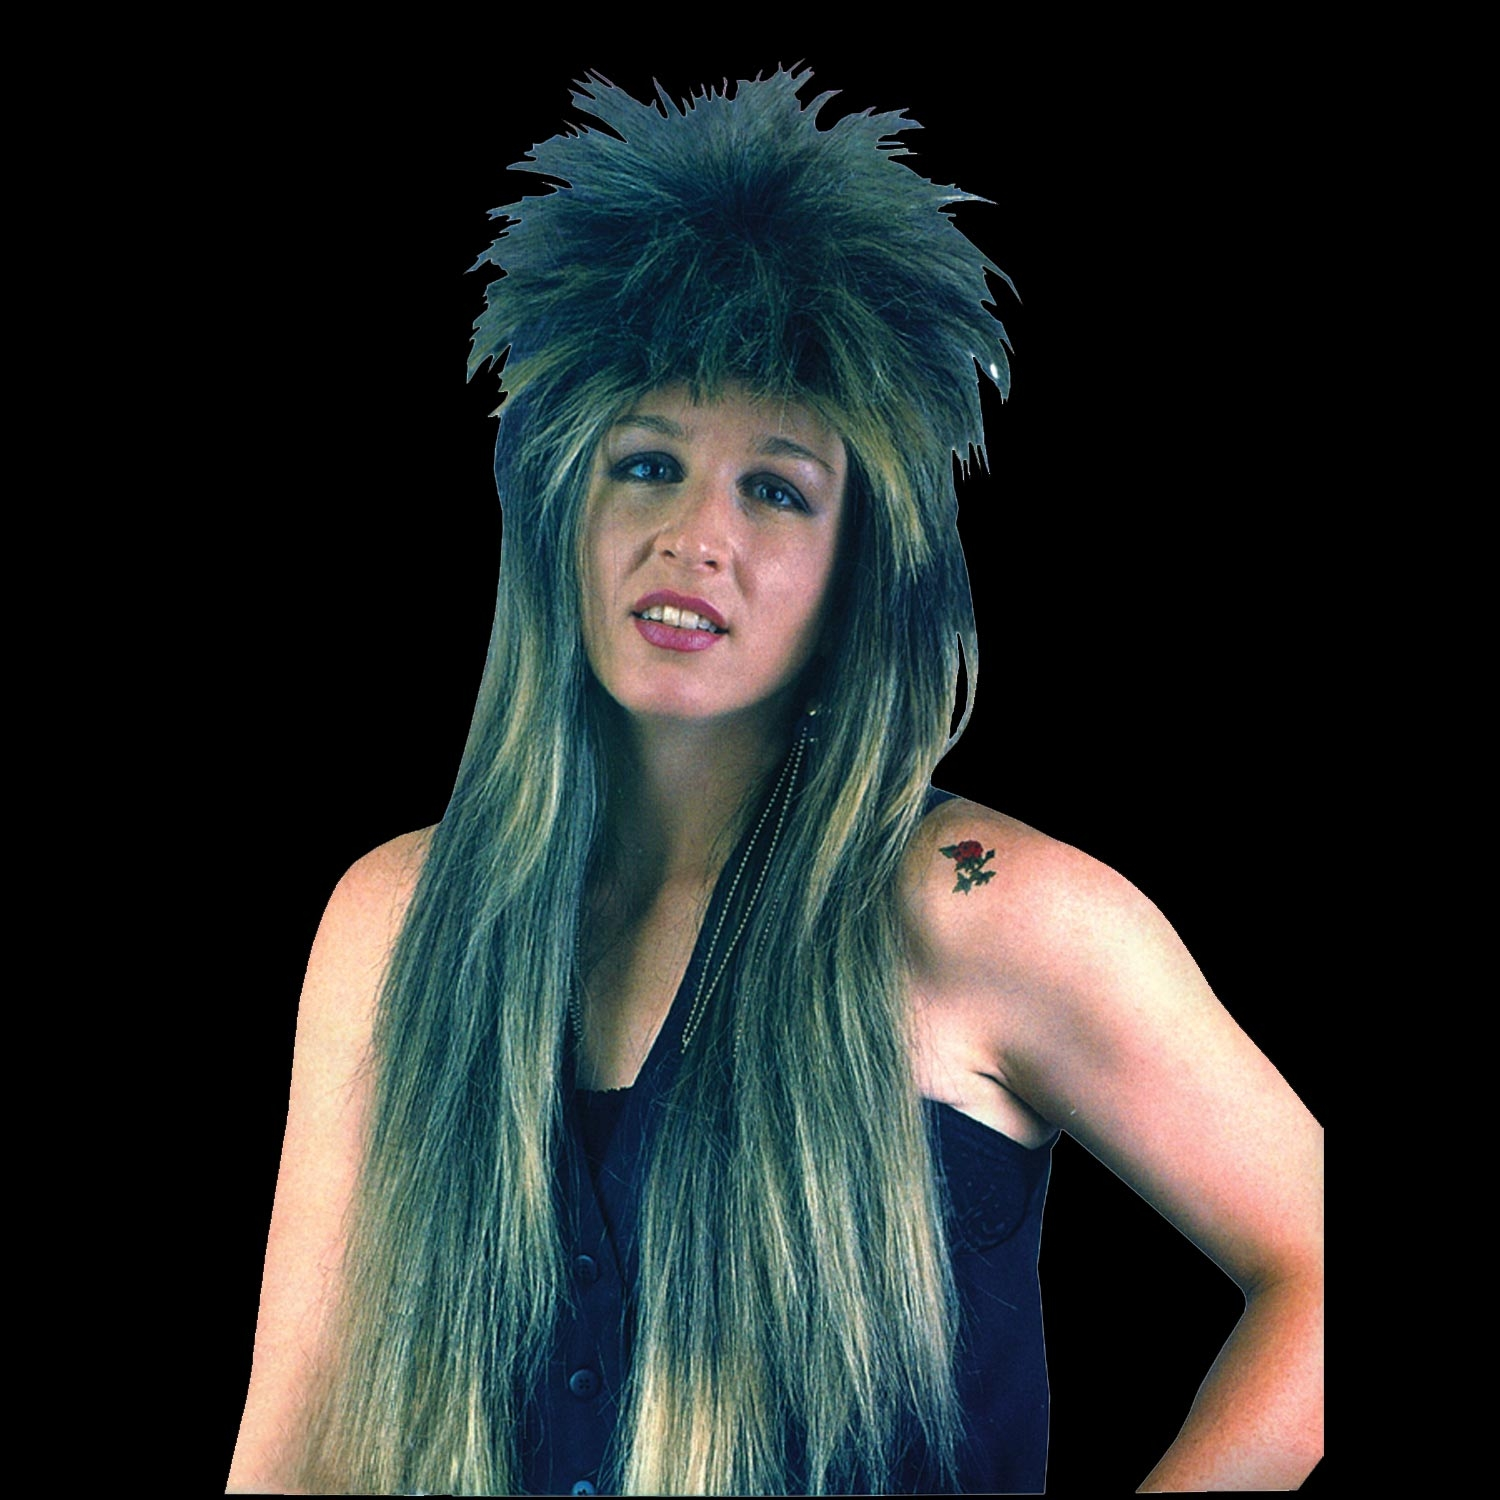 long-spiked-black-frosted-punk-rocker-wig-cool-gothic-elvira-costume